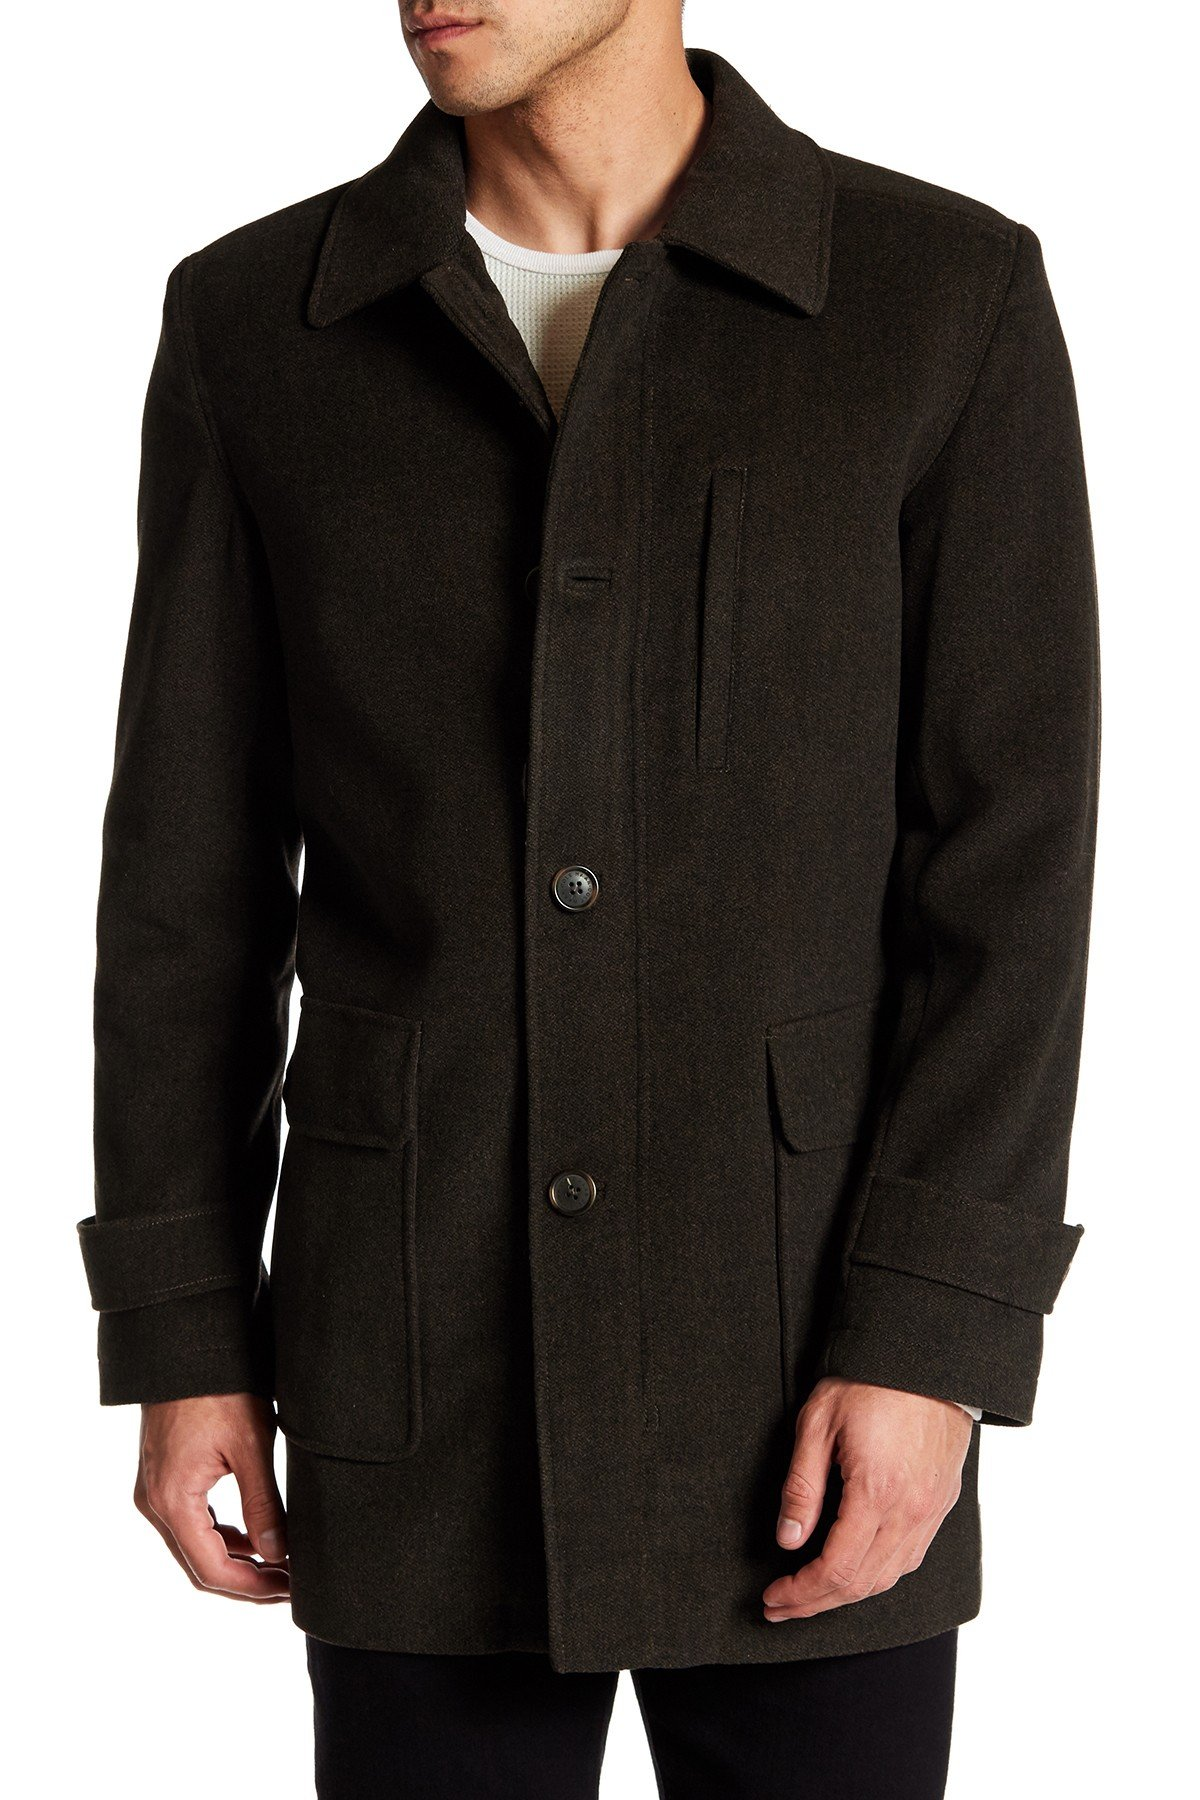 coats for men cole haan - topper coat ZCSXGOB